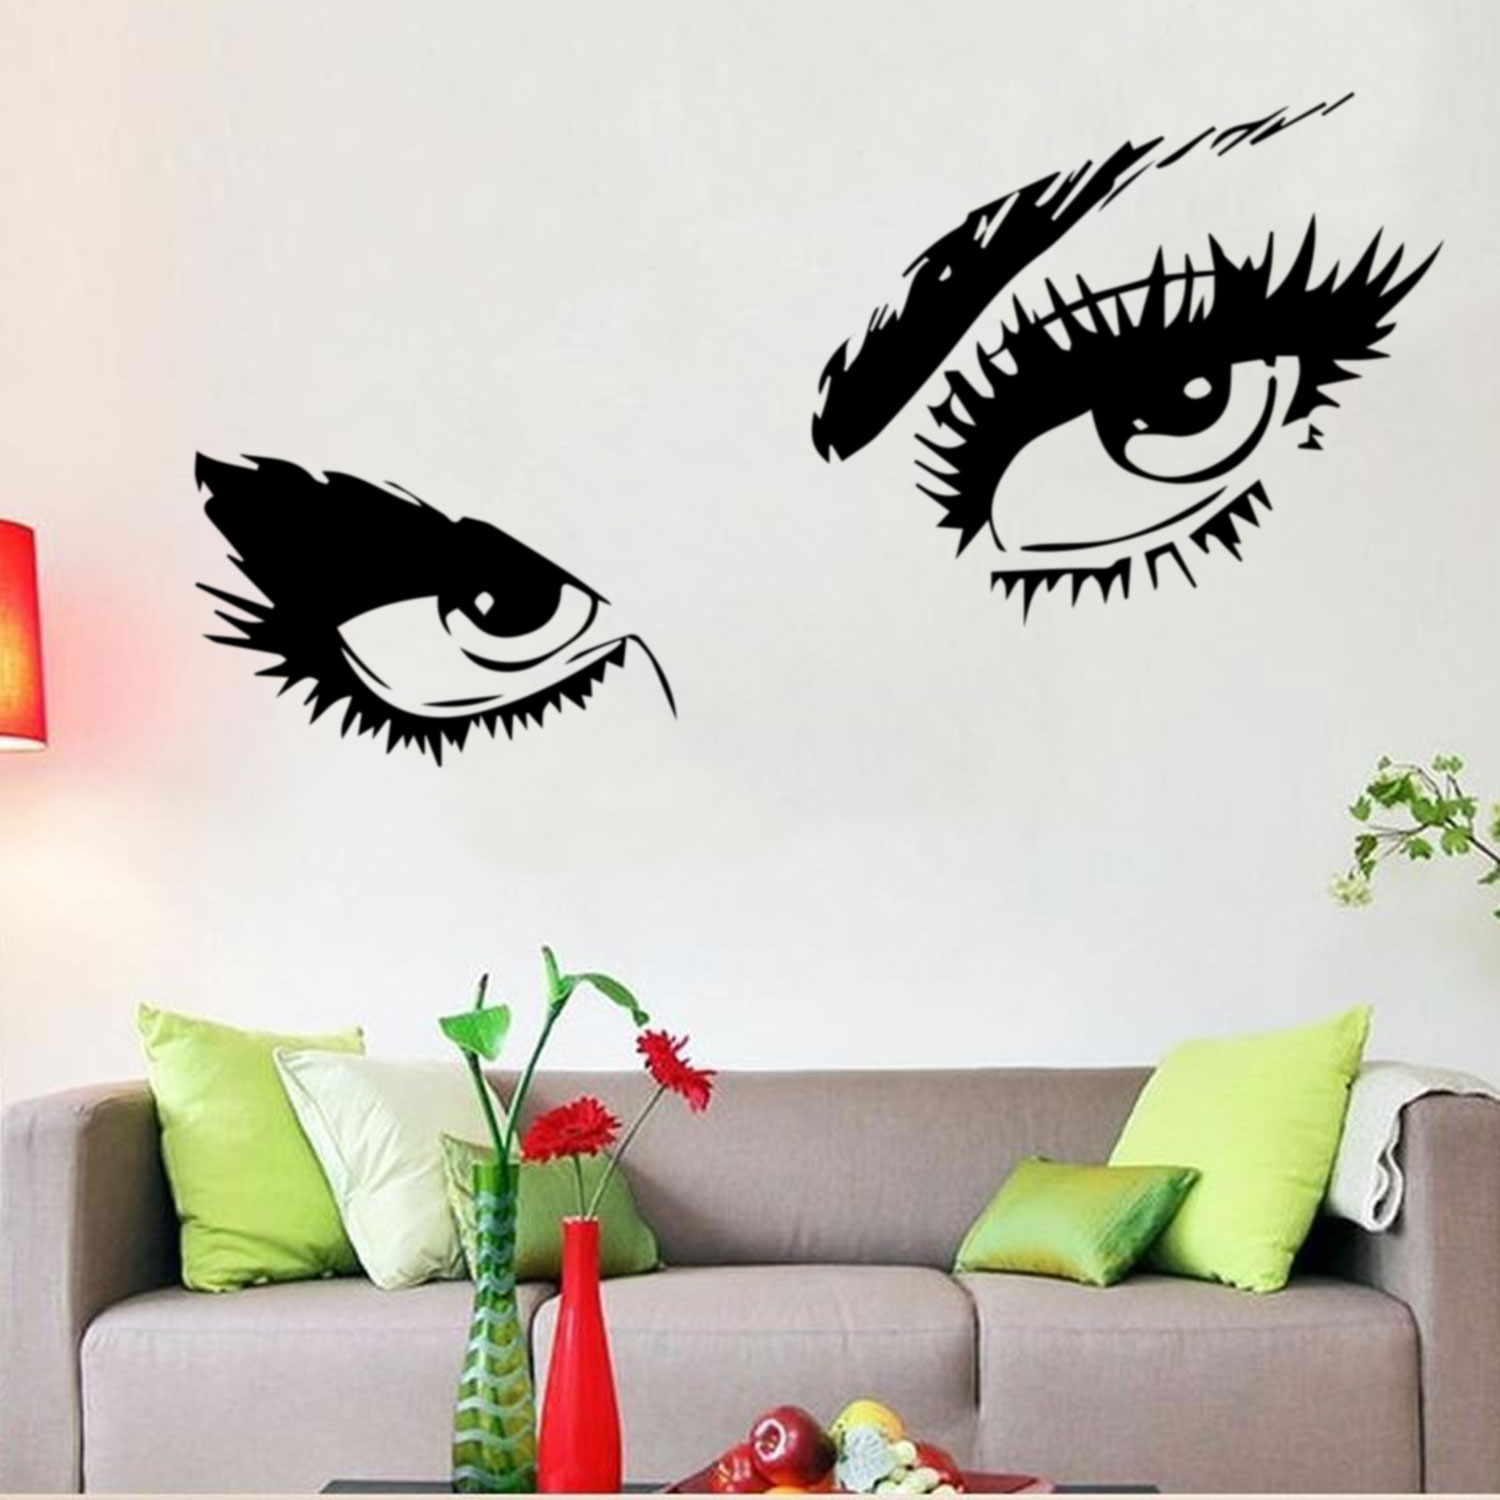 brushed graffitti printed wall art street on girl refined products decor graffiti aluminum